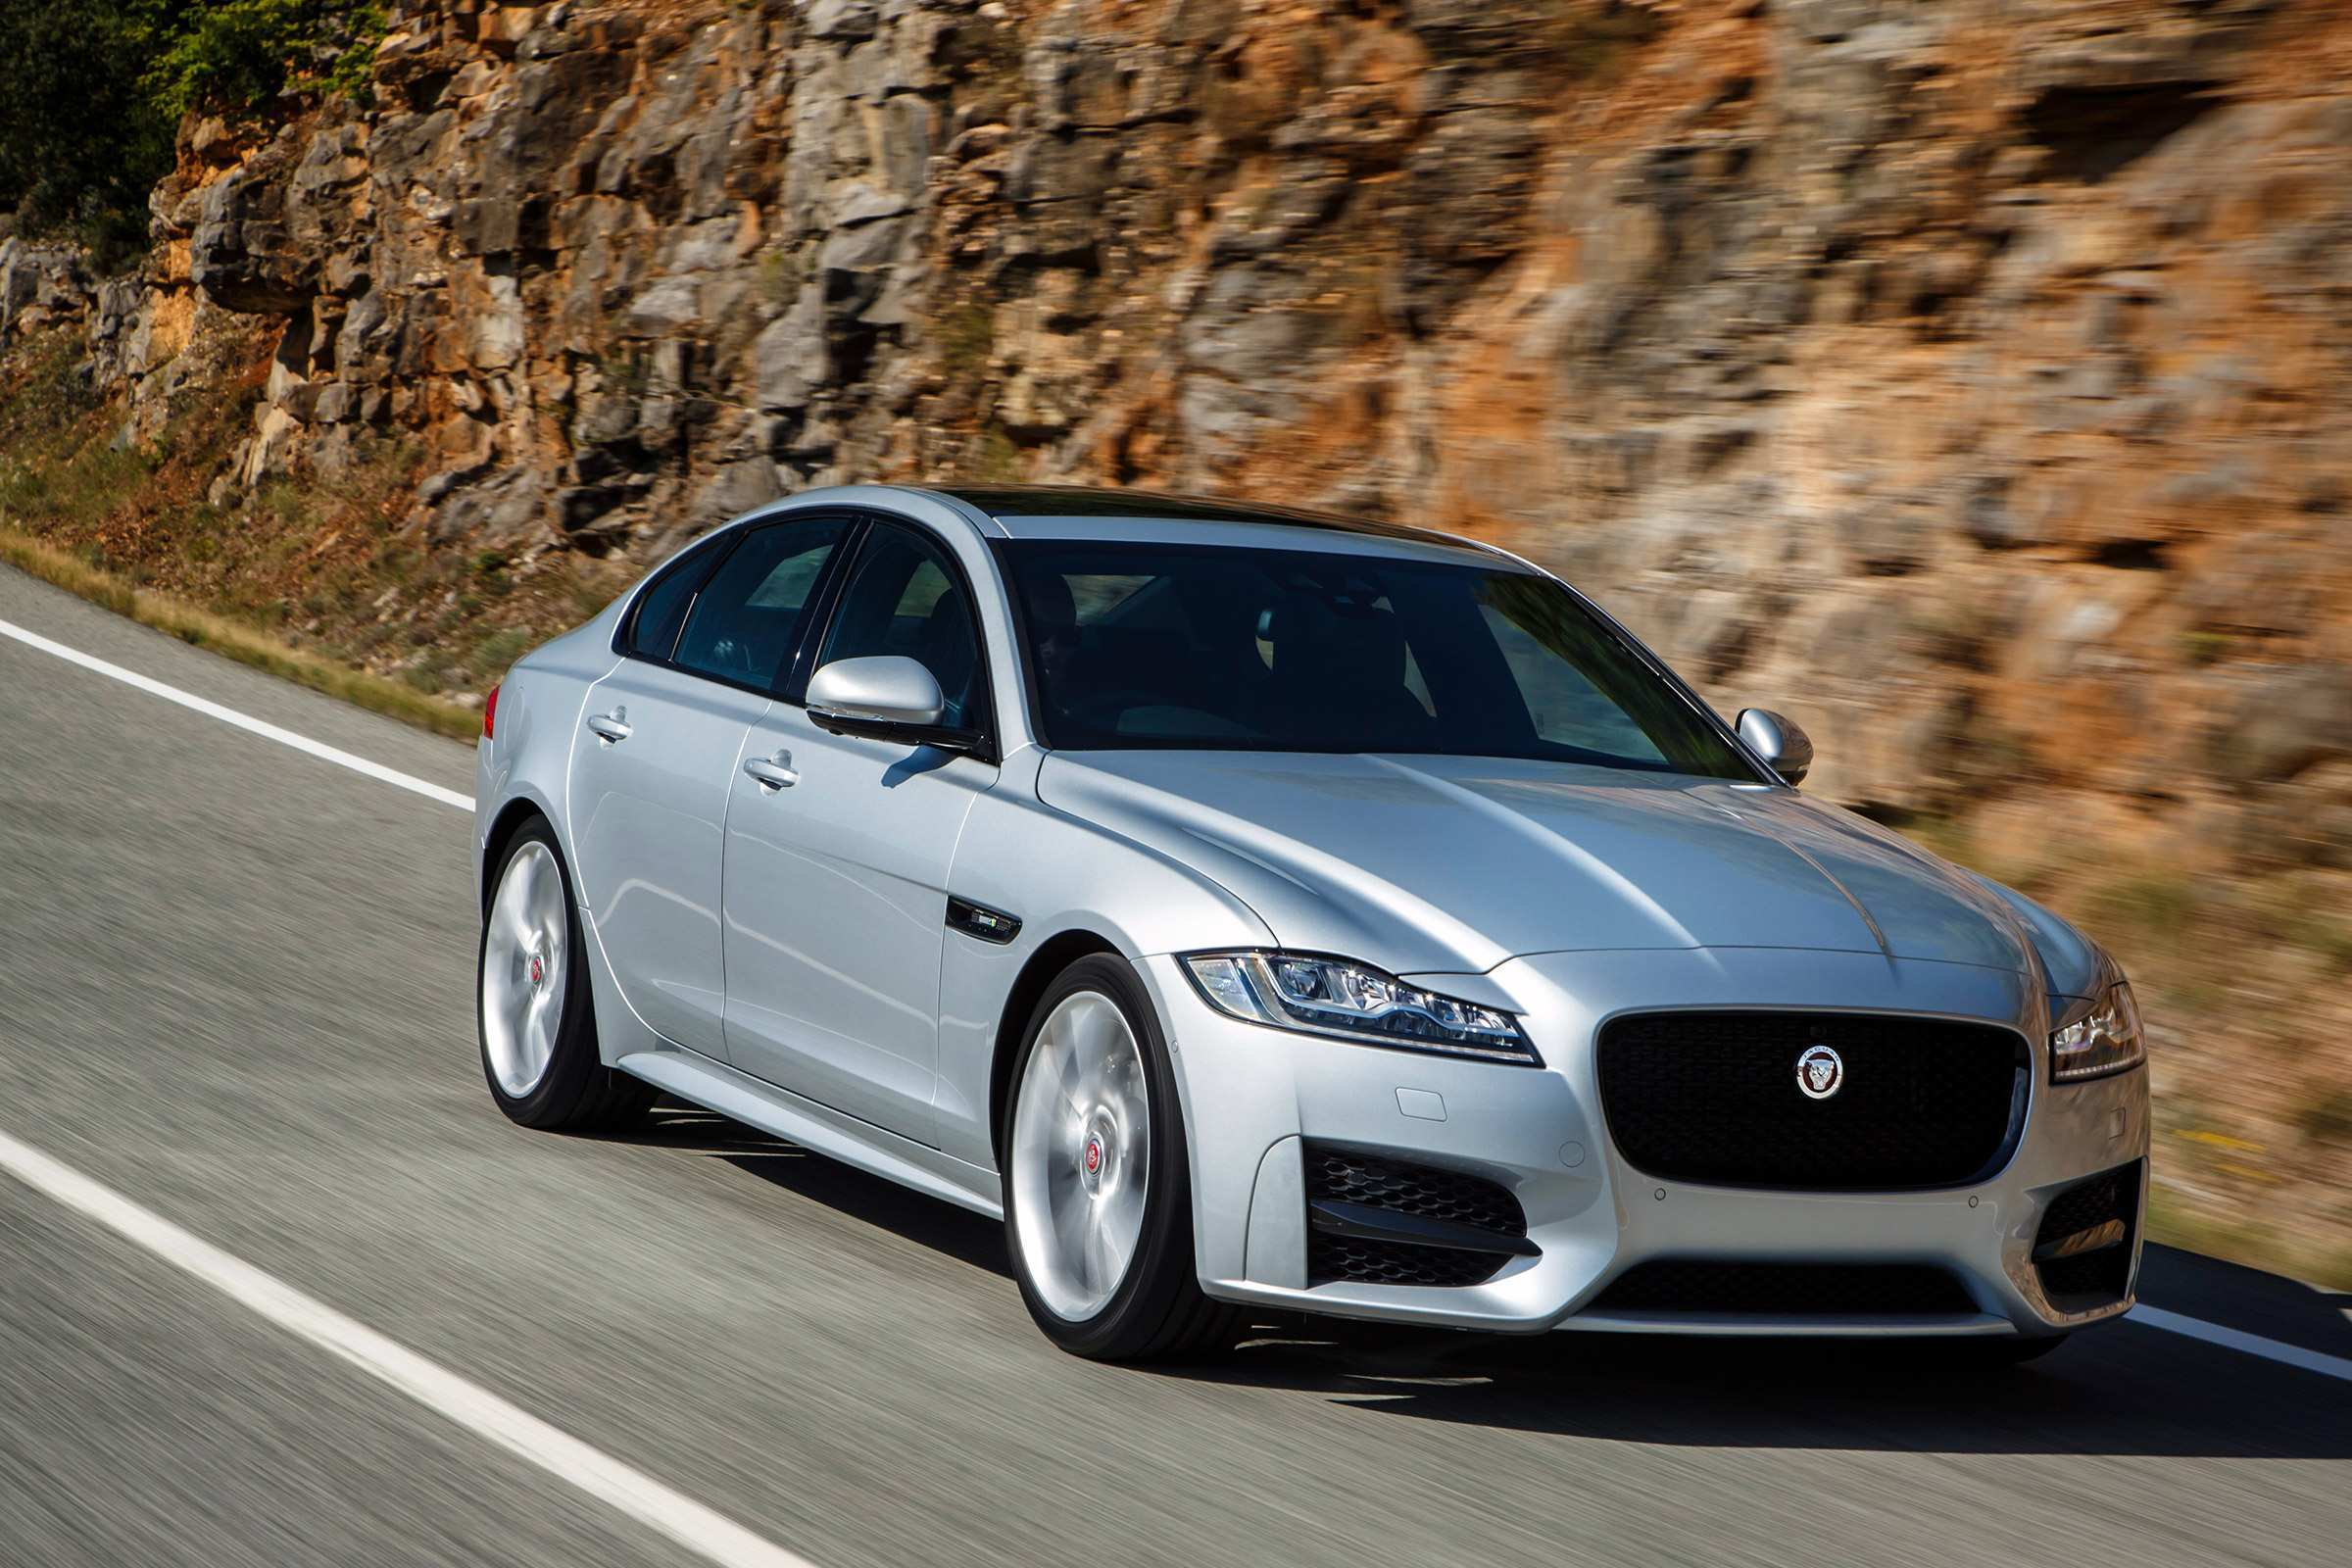 19 Concept of Best 2019 Jaguar Xf Wagon Release Date Release with Best 2019 Jaguar Xf Wagon Release Date